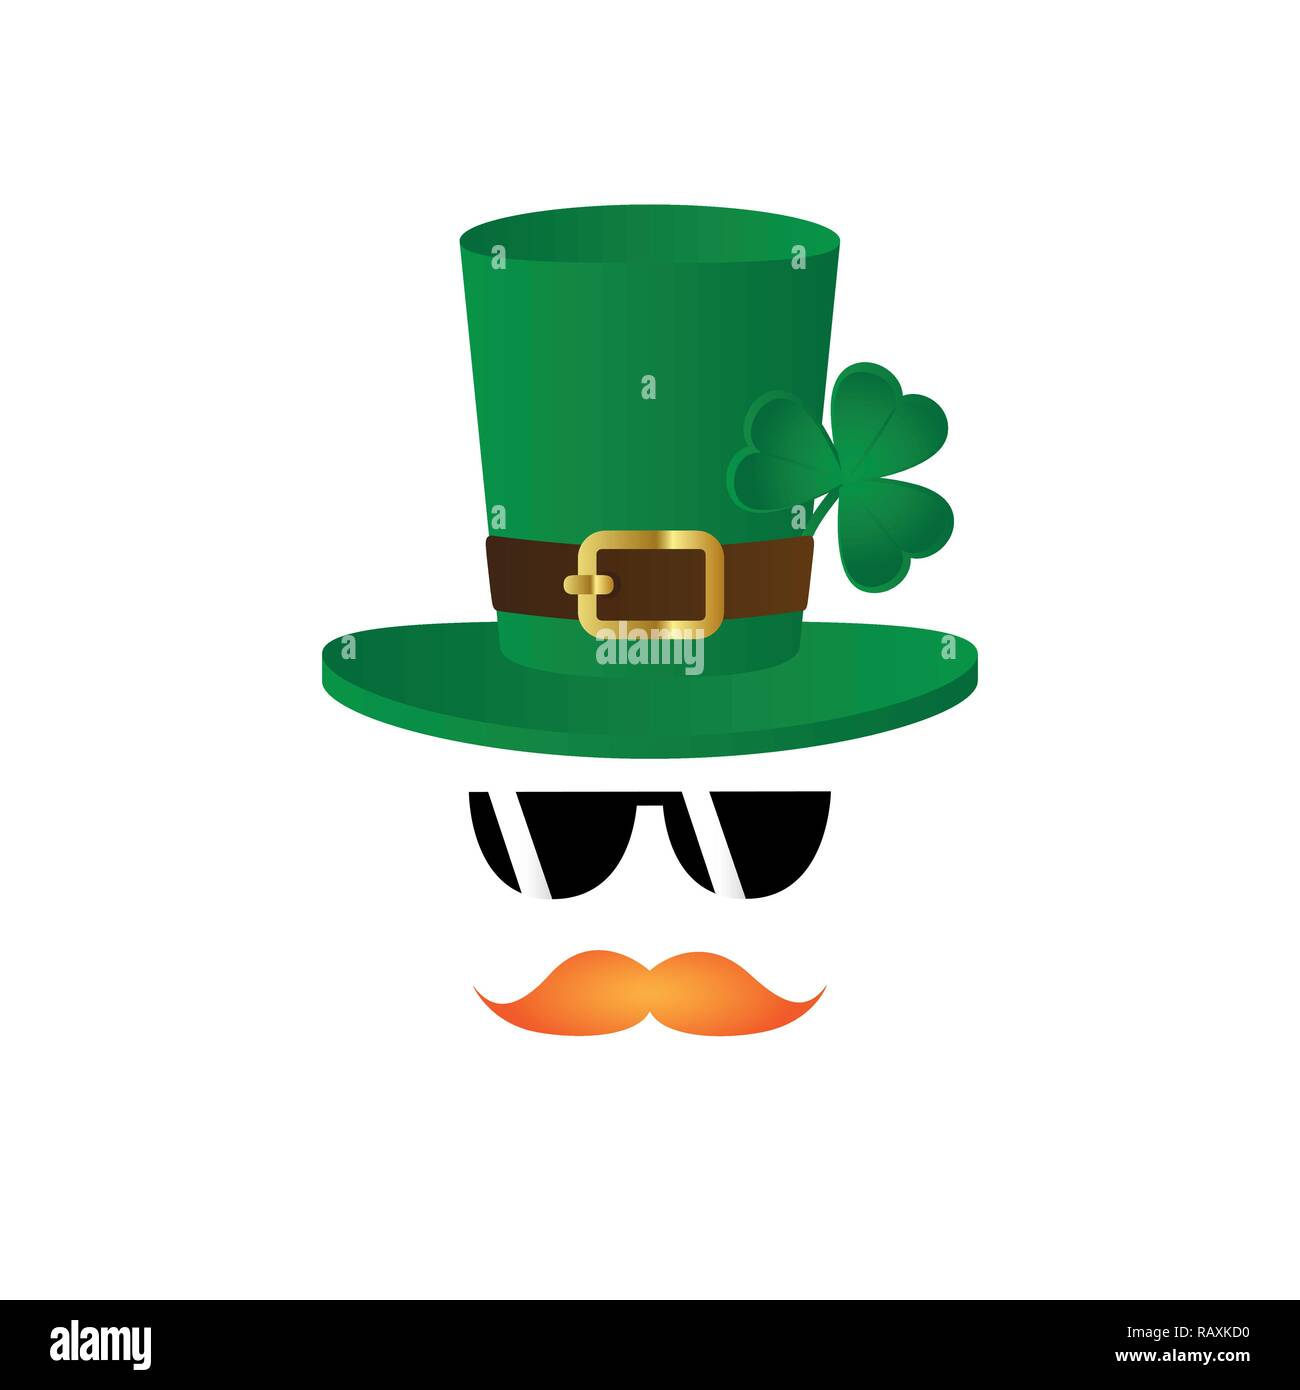 leprechaun character face red beard and hat with clover and sunglasses on white background vector illustration EPS10 - Stock Image